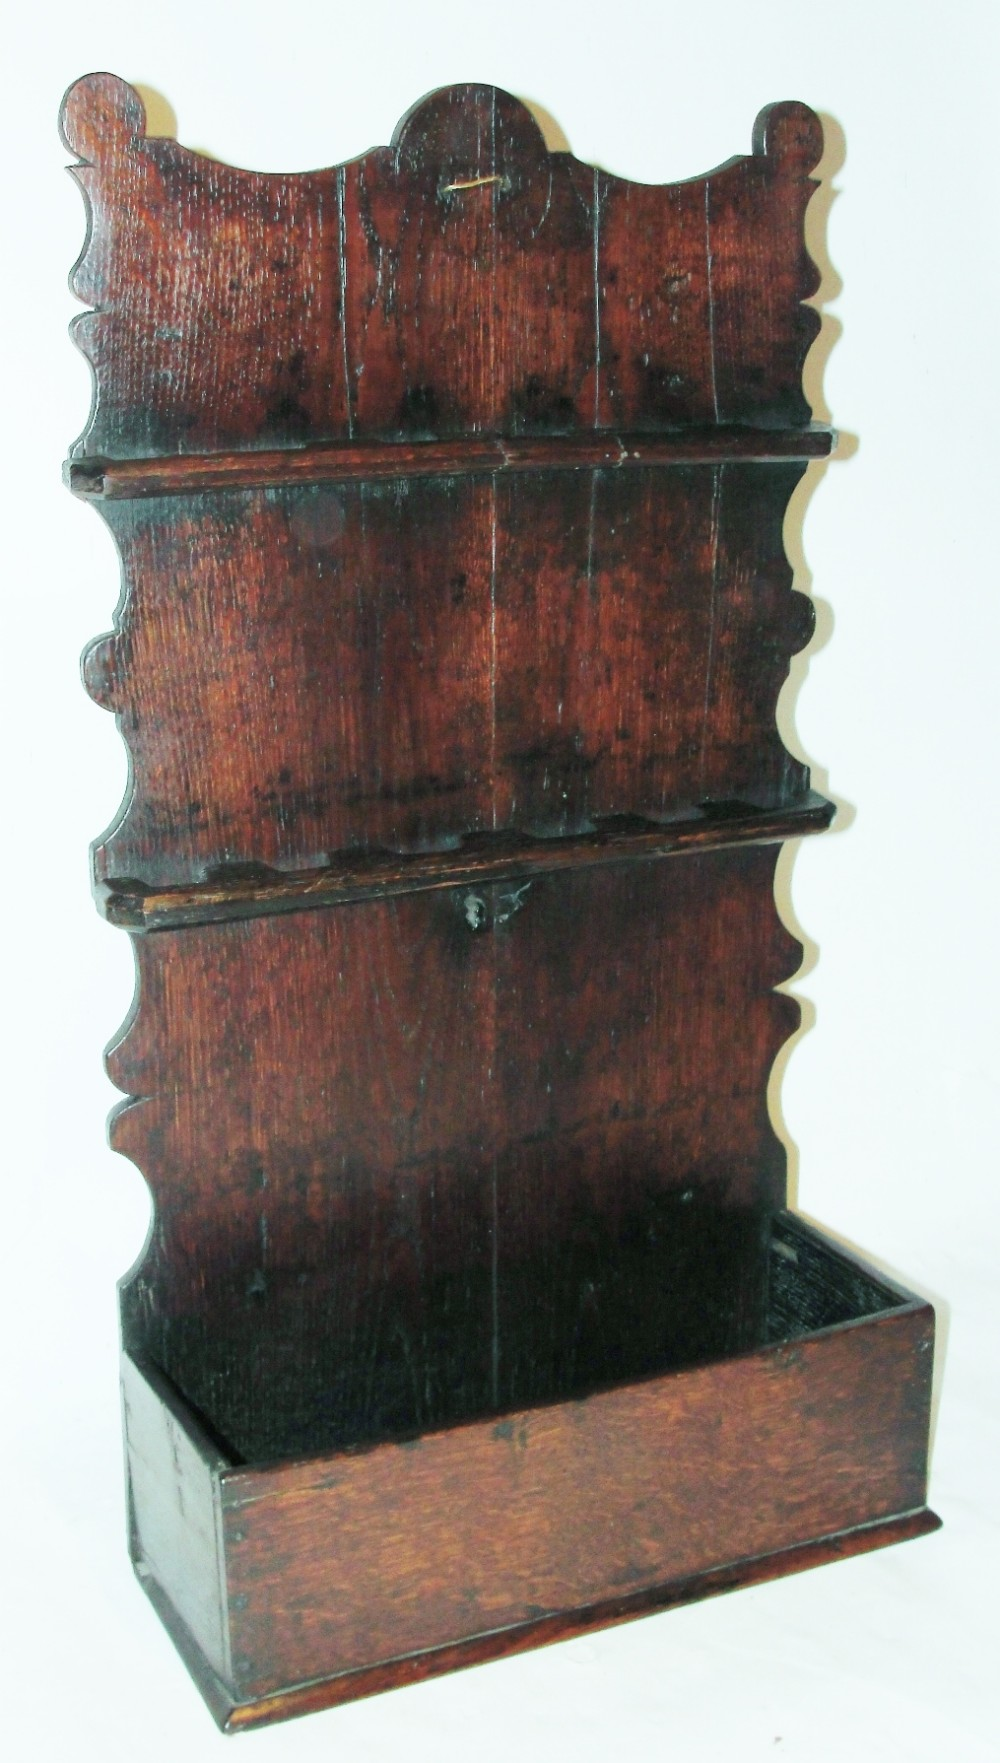 georgian oak spoon rack circa 1760